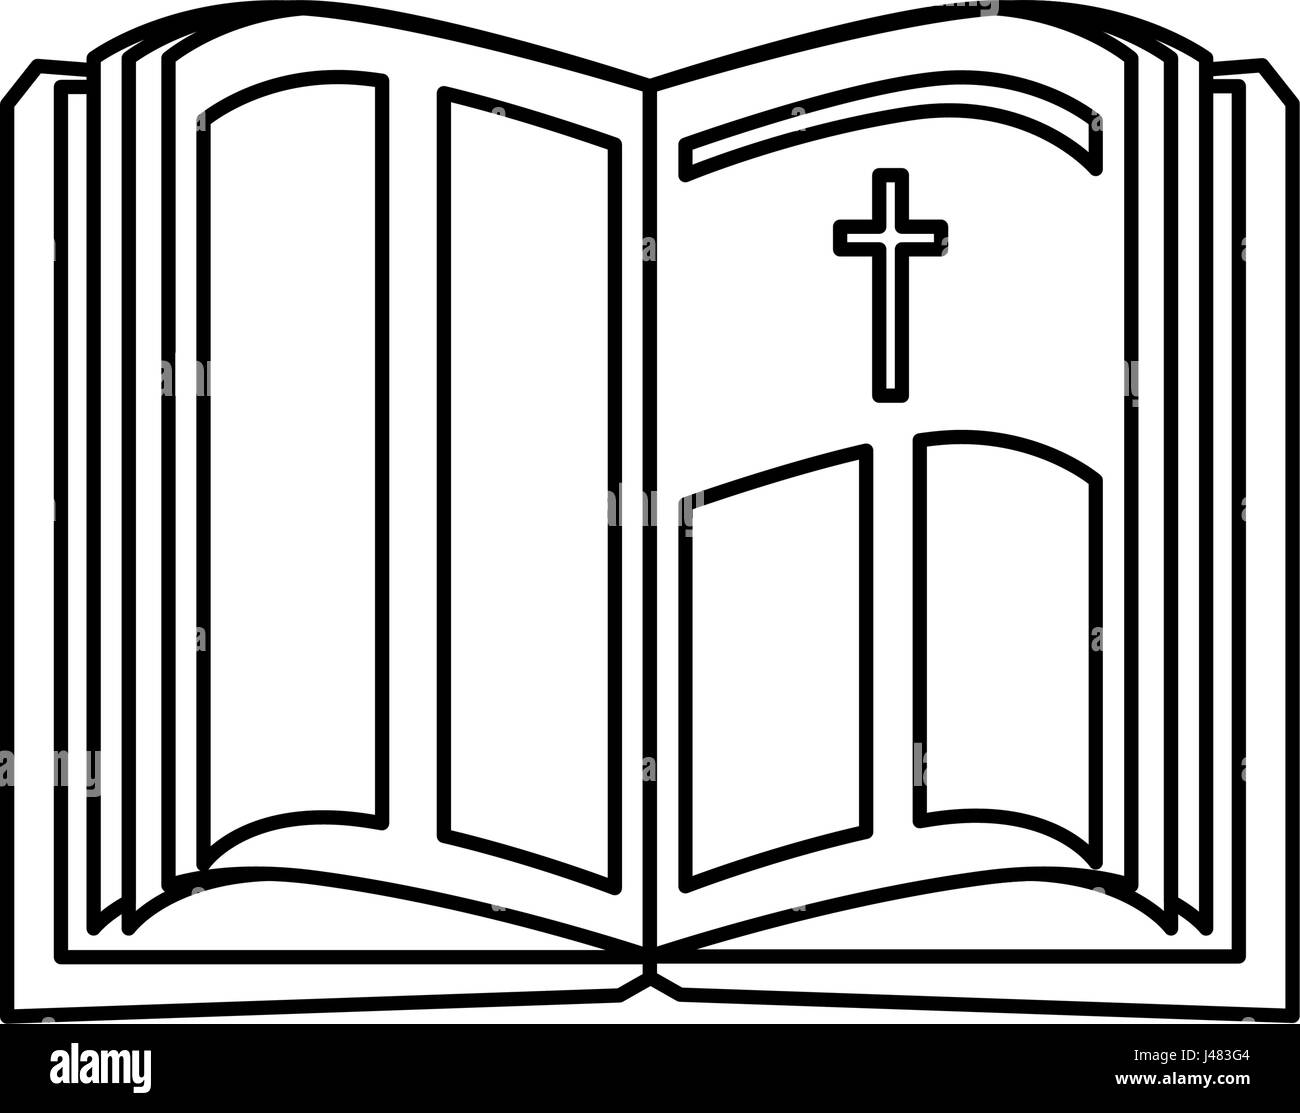 holy bible icon Stock Vector